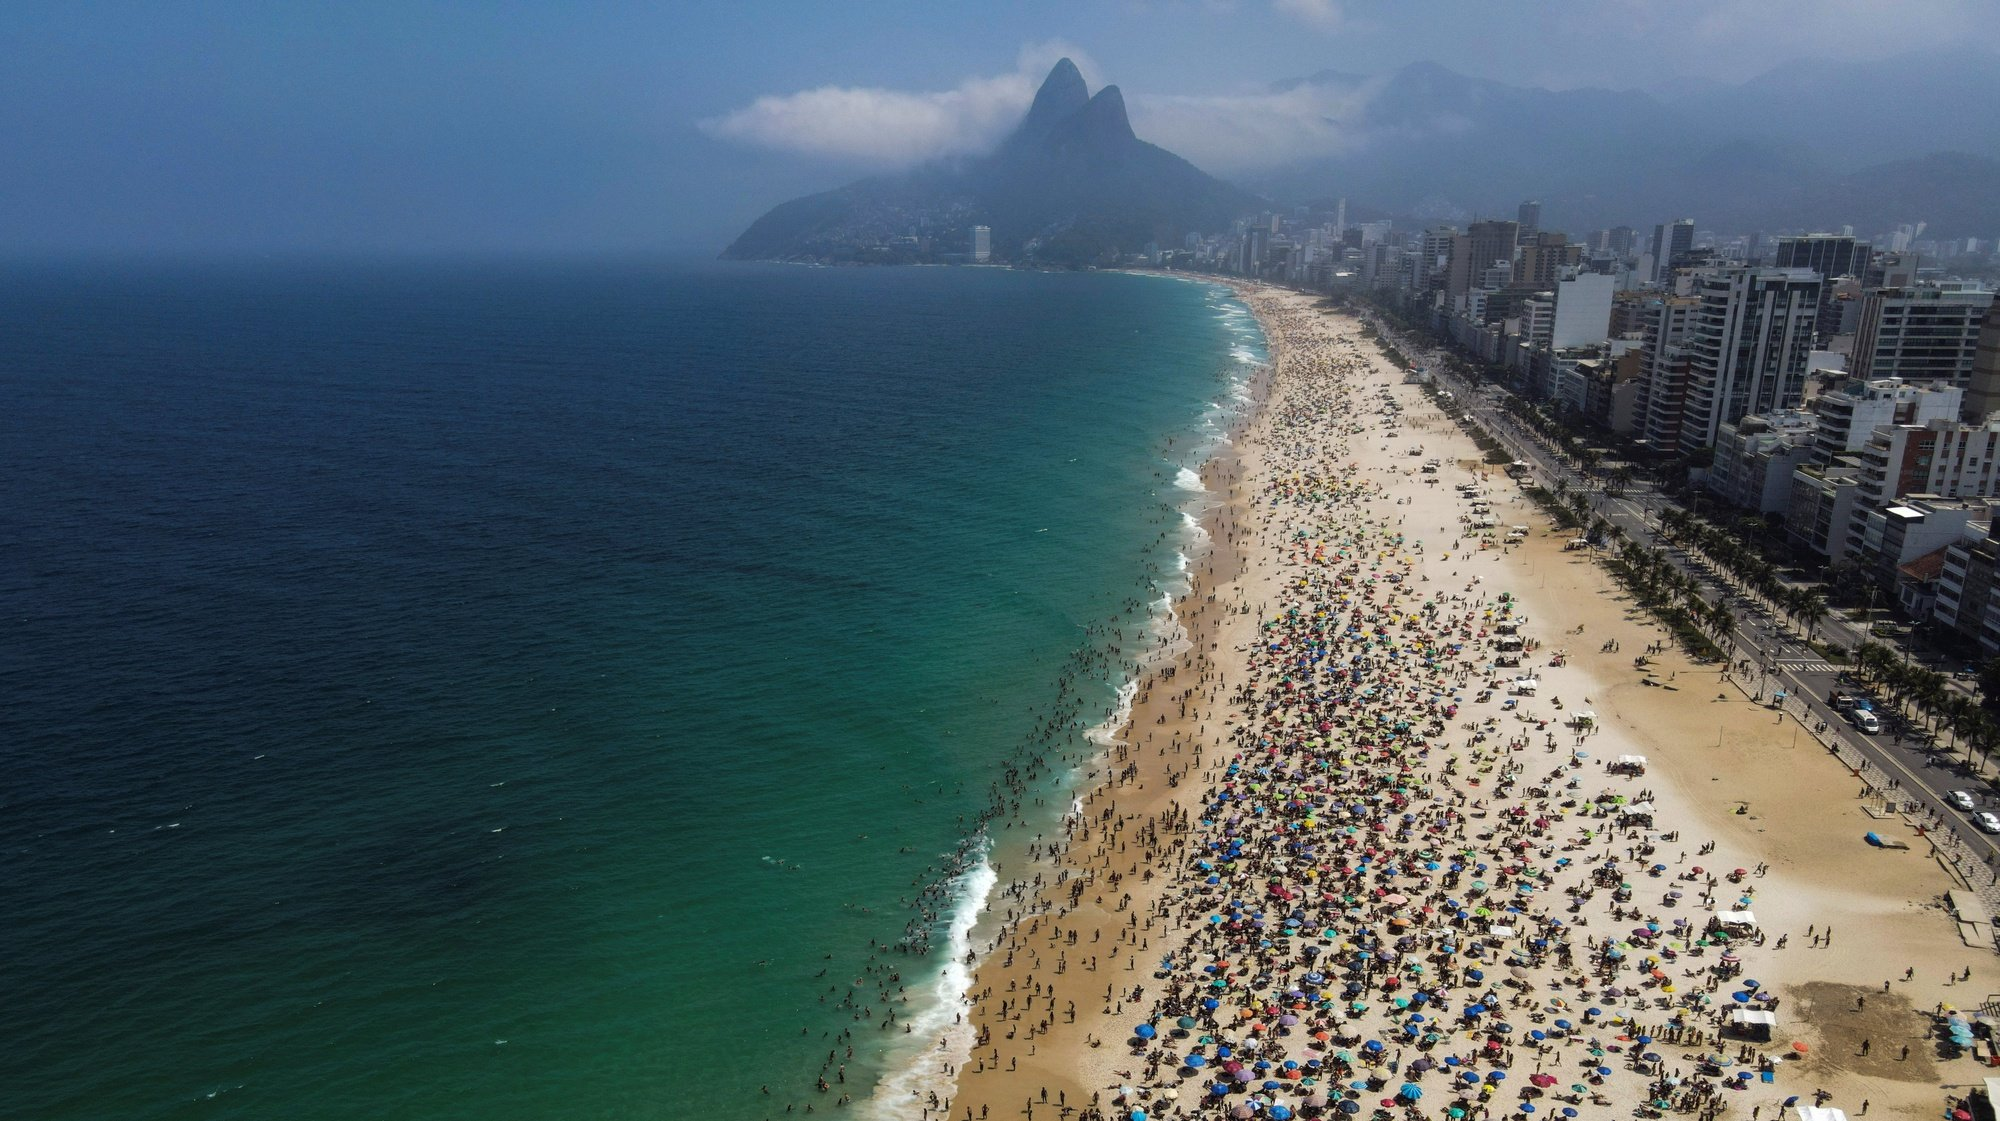 epa08666924 Aerial view of the crowded Ipanema beach in Rio de Janeiro, Brazil, 13 September 2020. Paying less attention to measures to control coronavirus spreading, visitors have crowded Ipanema and Copacabana beaches in Rio de Janeiro.  EPA/Antonio Lacerda